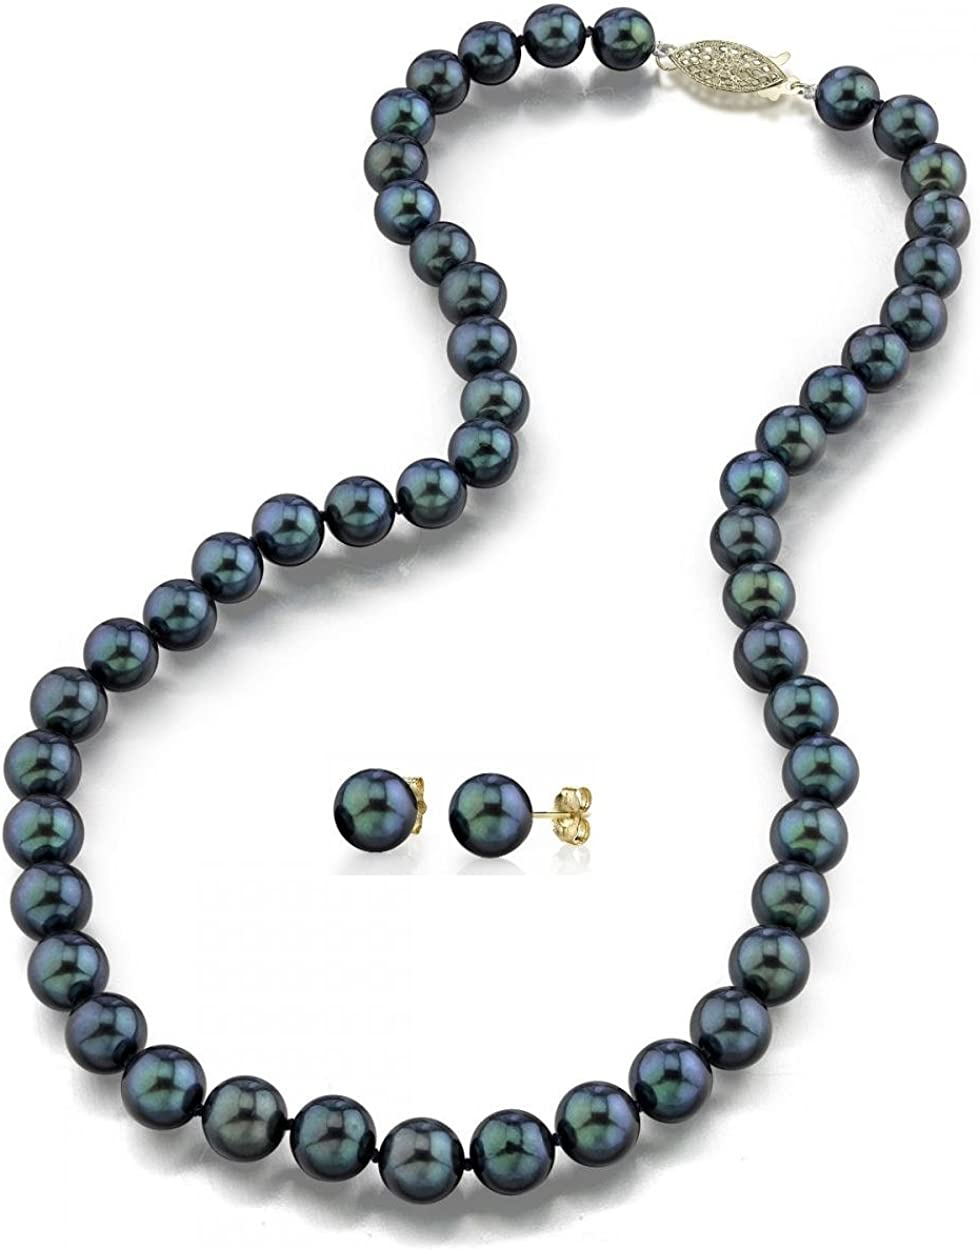 THE PEARL SOURCE 14K Gold 6.5-7mm AAA Quality Round Black Akoya Cultured Pearl Necklace & Earrings Set in 18